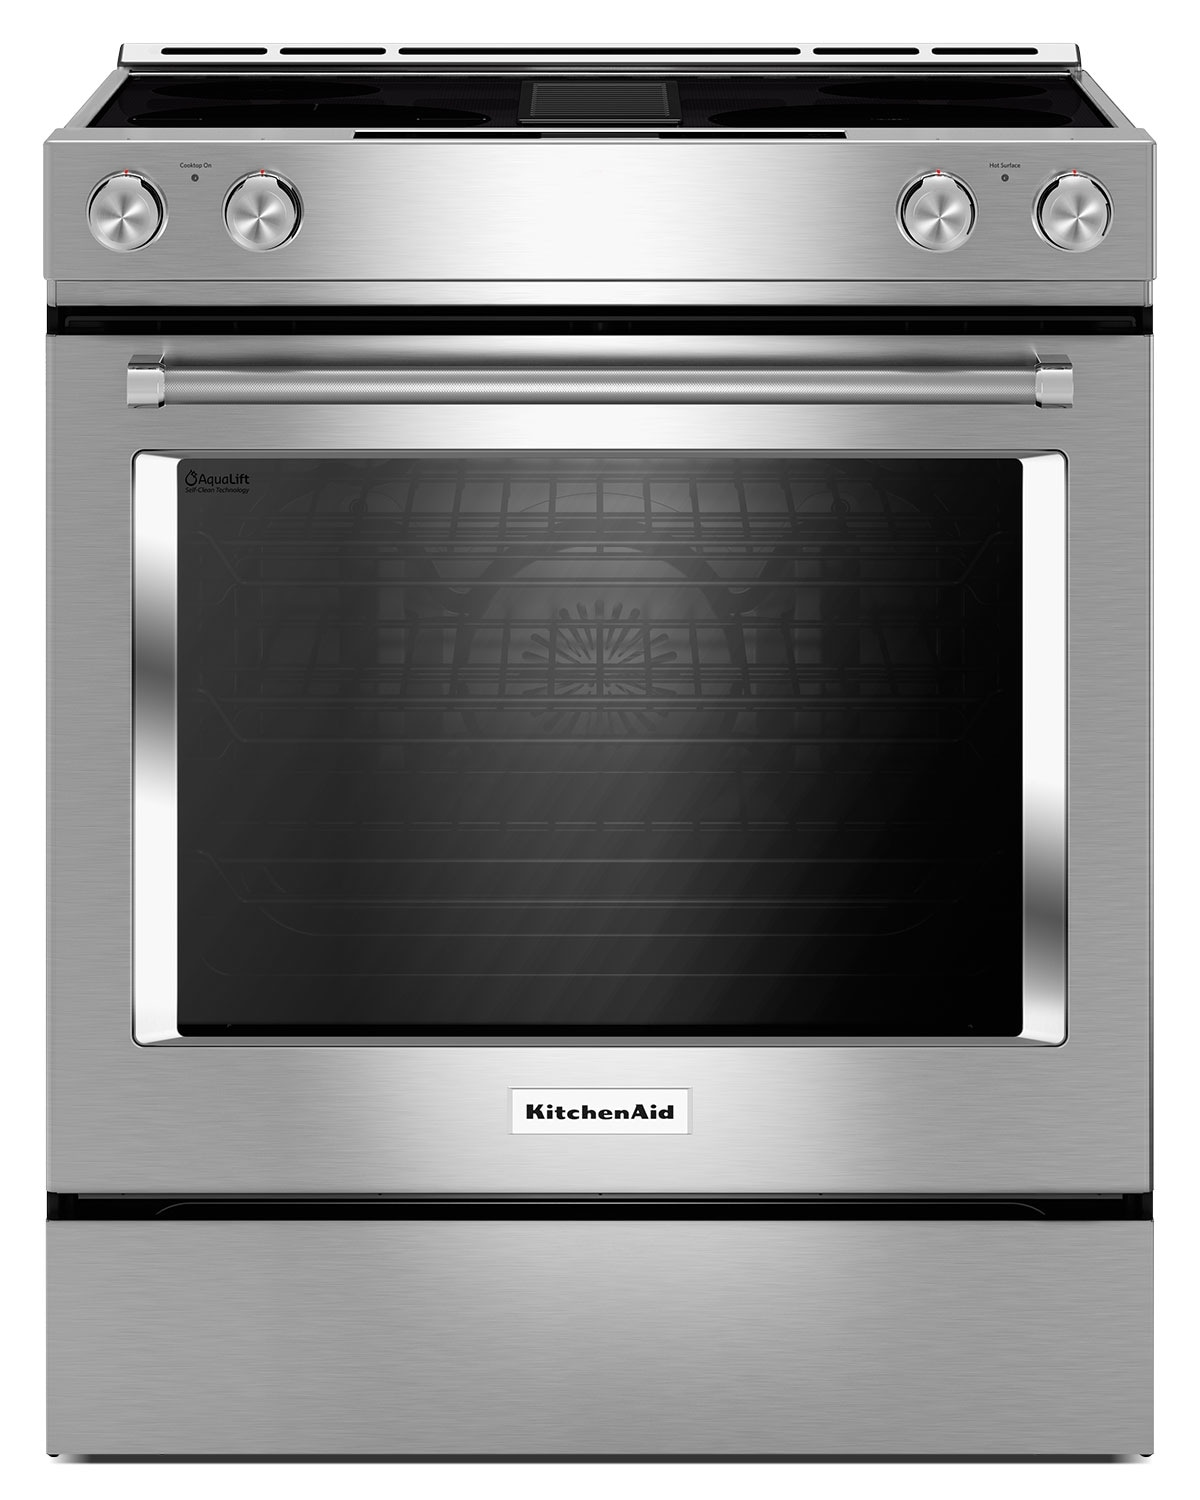 KitchenAid 6.4 Cu. Ft. Downdraft Electric Range – Stainless Steel